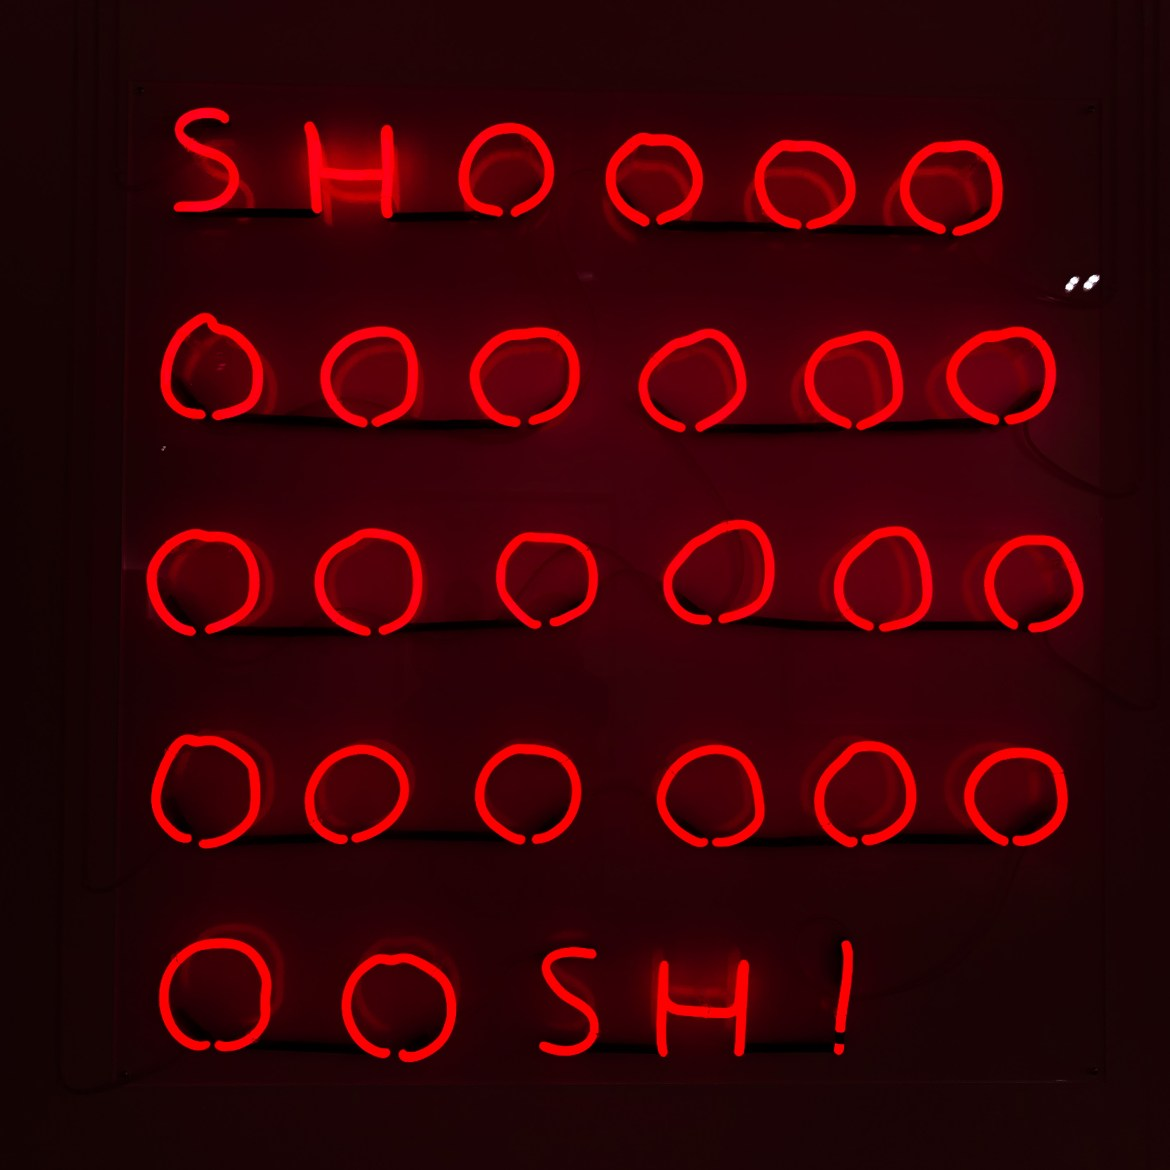 Title: Shoooosh! Artist: David Shrigley #artbaselmiami